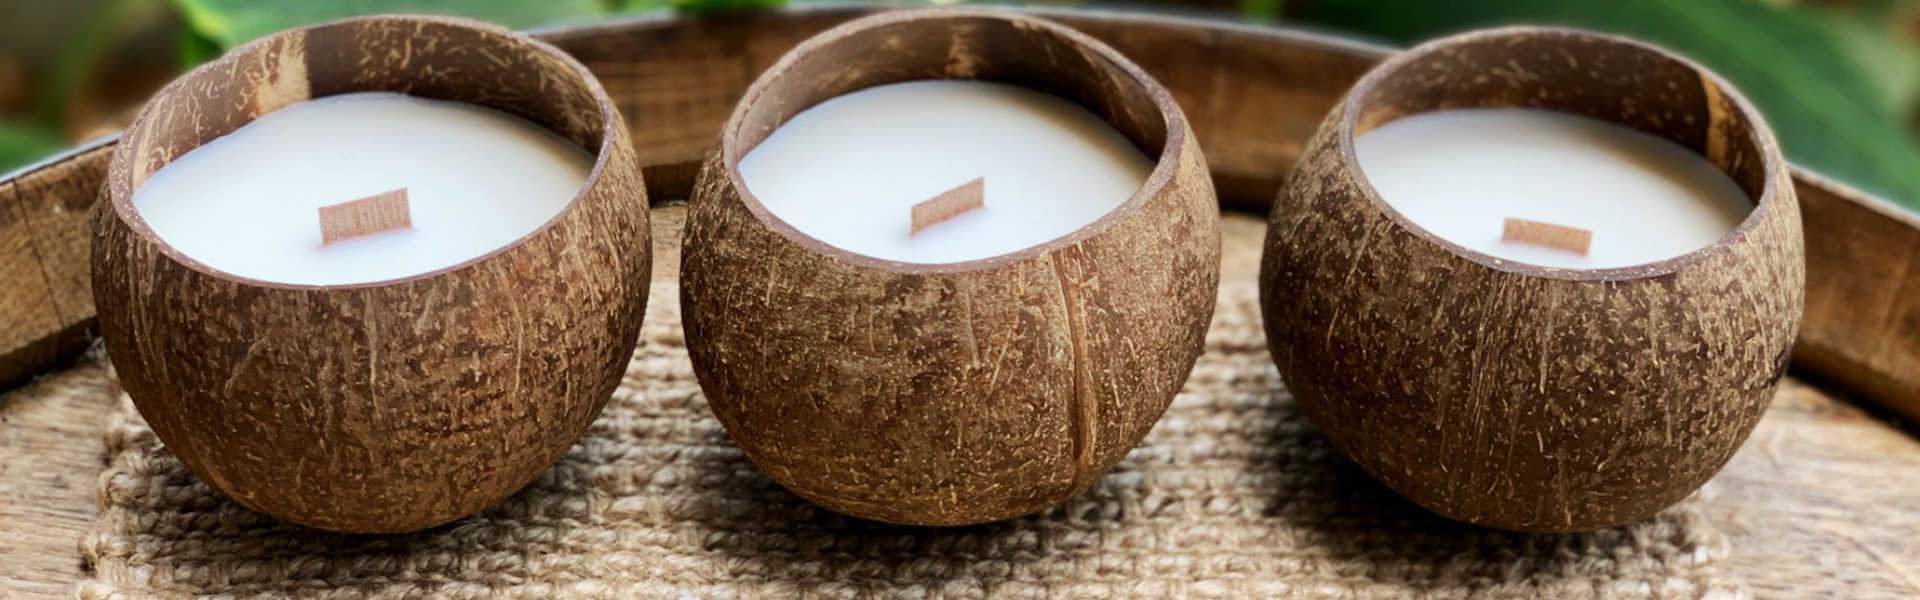 Soy Candles in Coconut